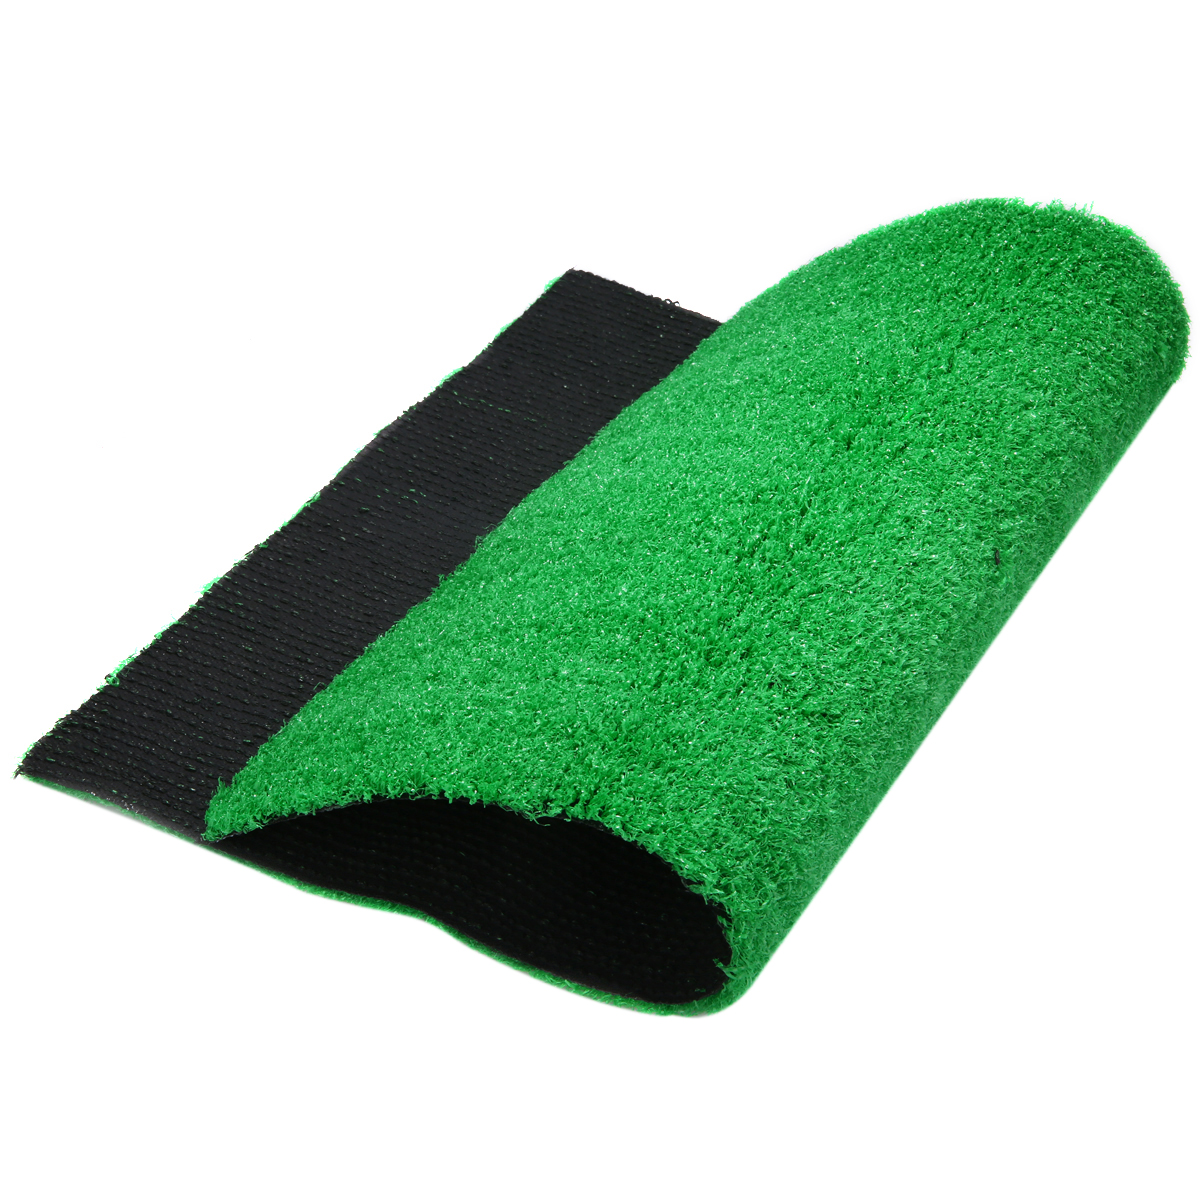 1PC Pet Puppy Potty Trainer Indoor Training Toilet Dog Artificial Turf Grass Pad Pee Mat Patch For Small Medium Sized Dog